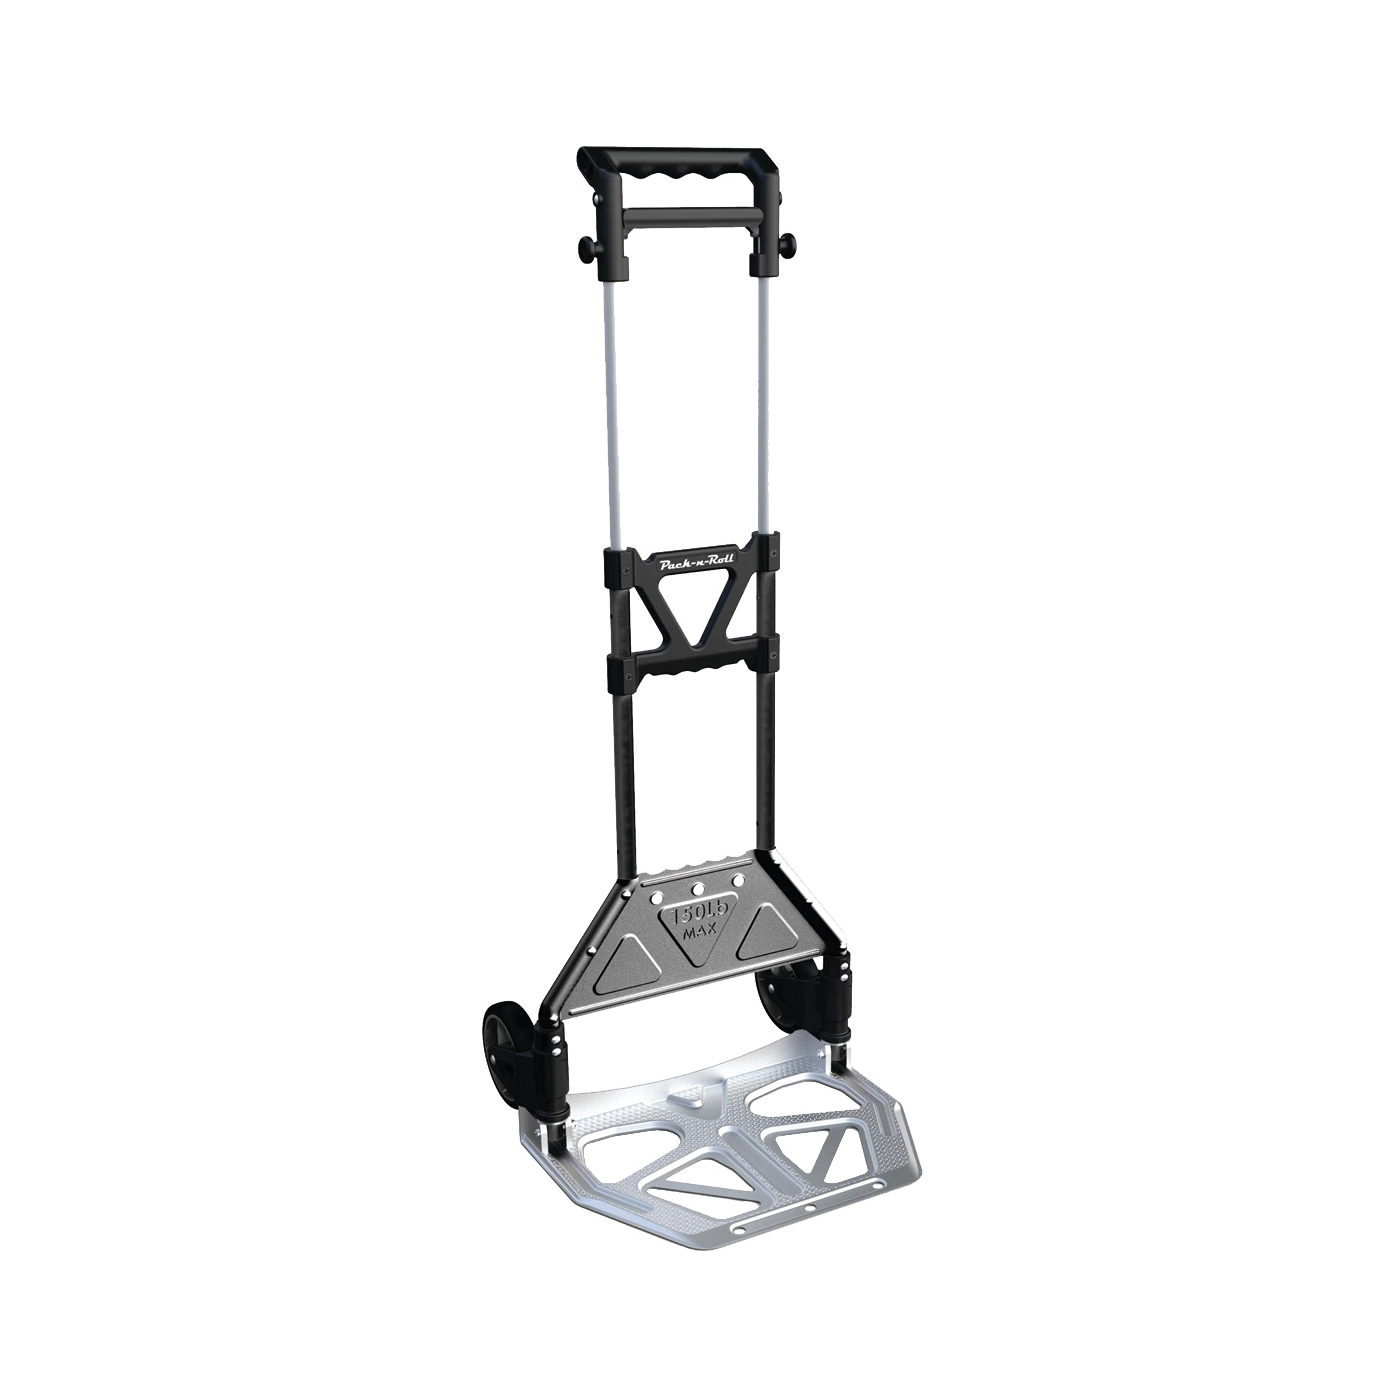 Picture of Olympia Tools PACK-N-ROLL 85-609 Folding Cart, 150 lb, 15-1/4 in OAW, 11 in OAH, Aluminum